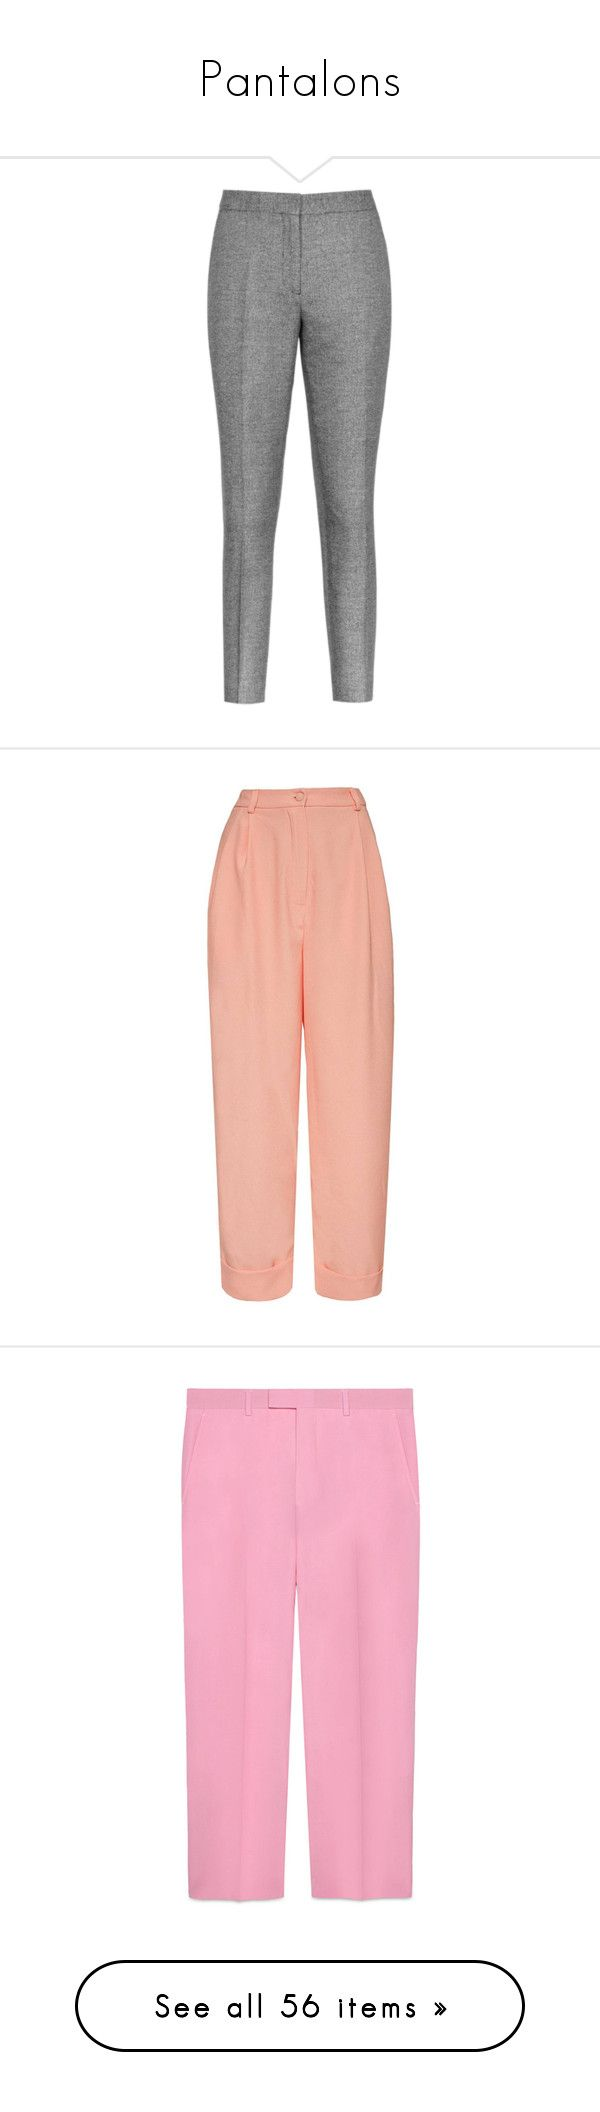 """""""Pantalons"""" by liligwada ❤ liked on Polyvore featuring pants, slim trousers, zipper trousers, zipper pants, zip pants, tailored trousers, boyfriend pants, button pants, viscose pants and red trousers"""